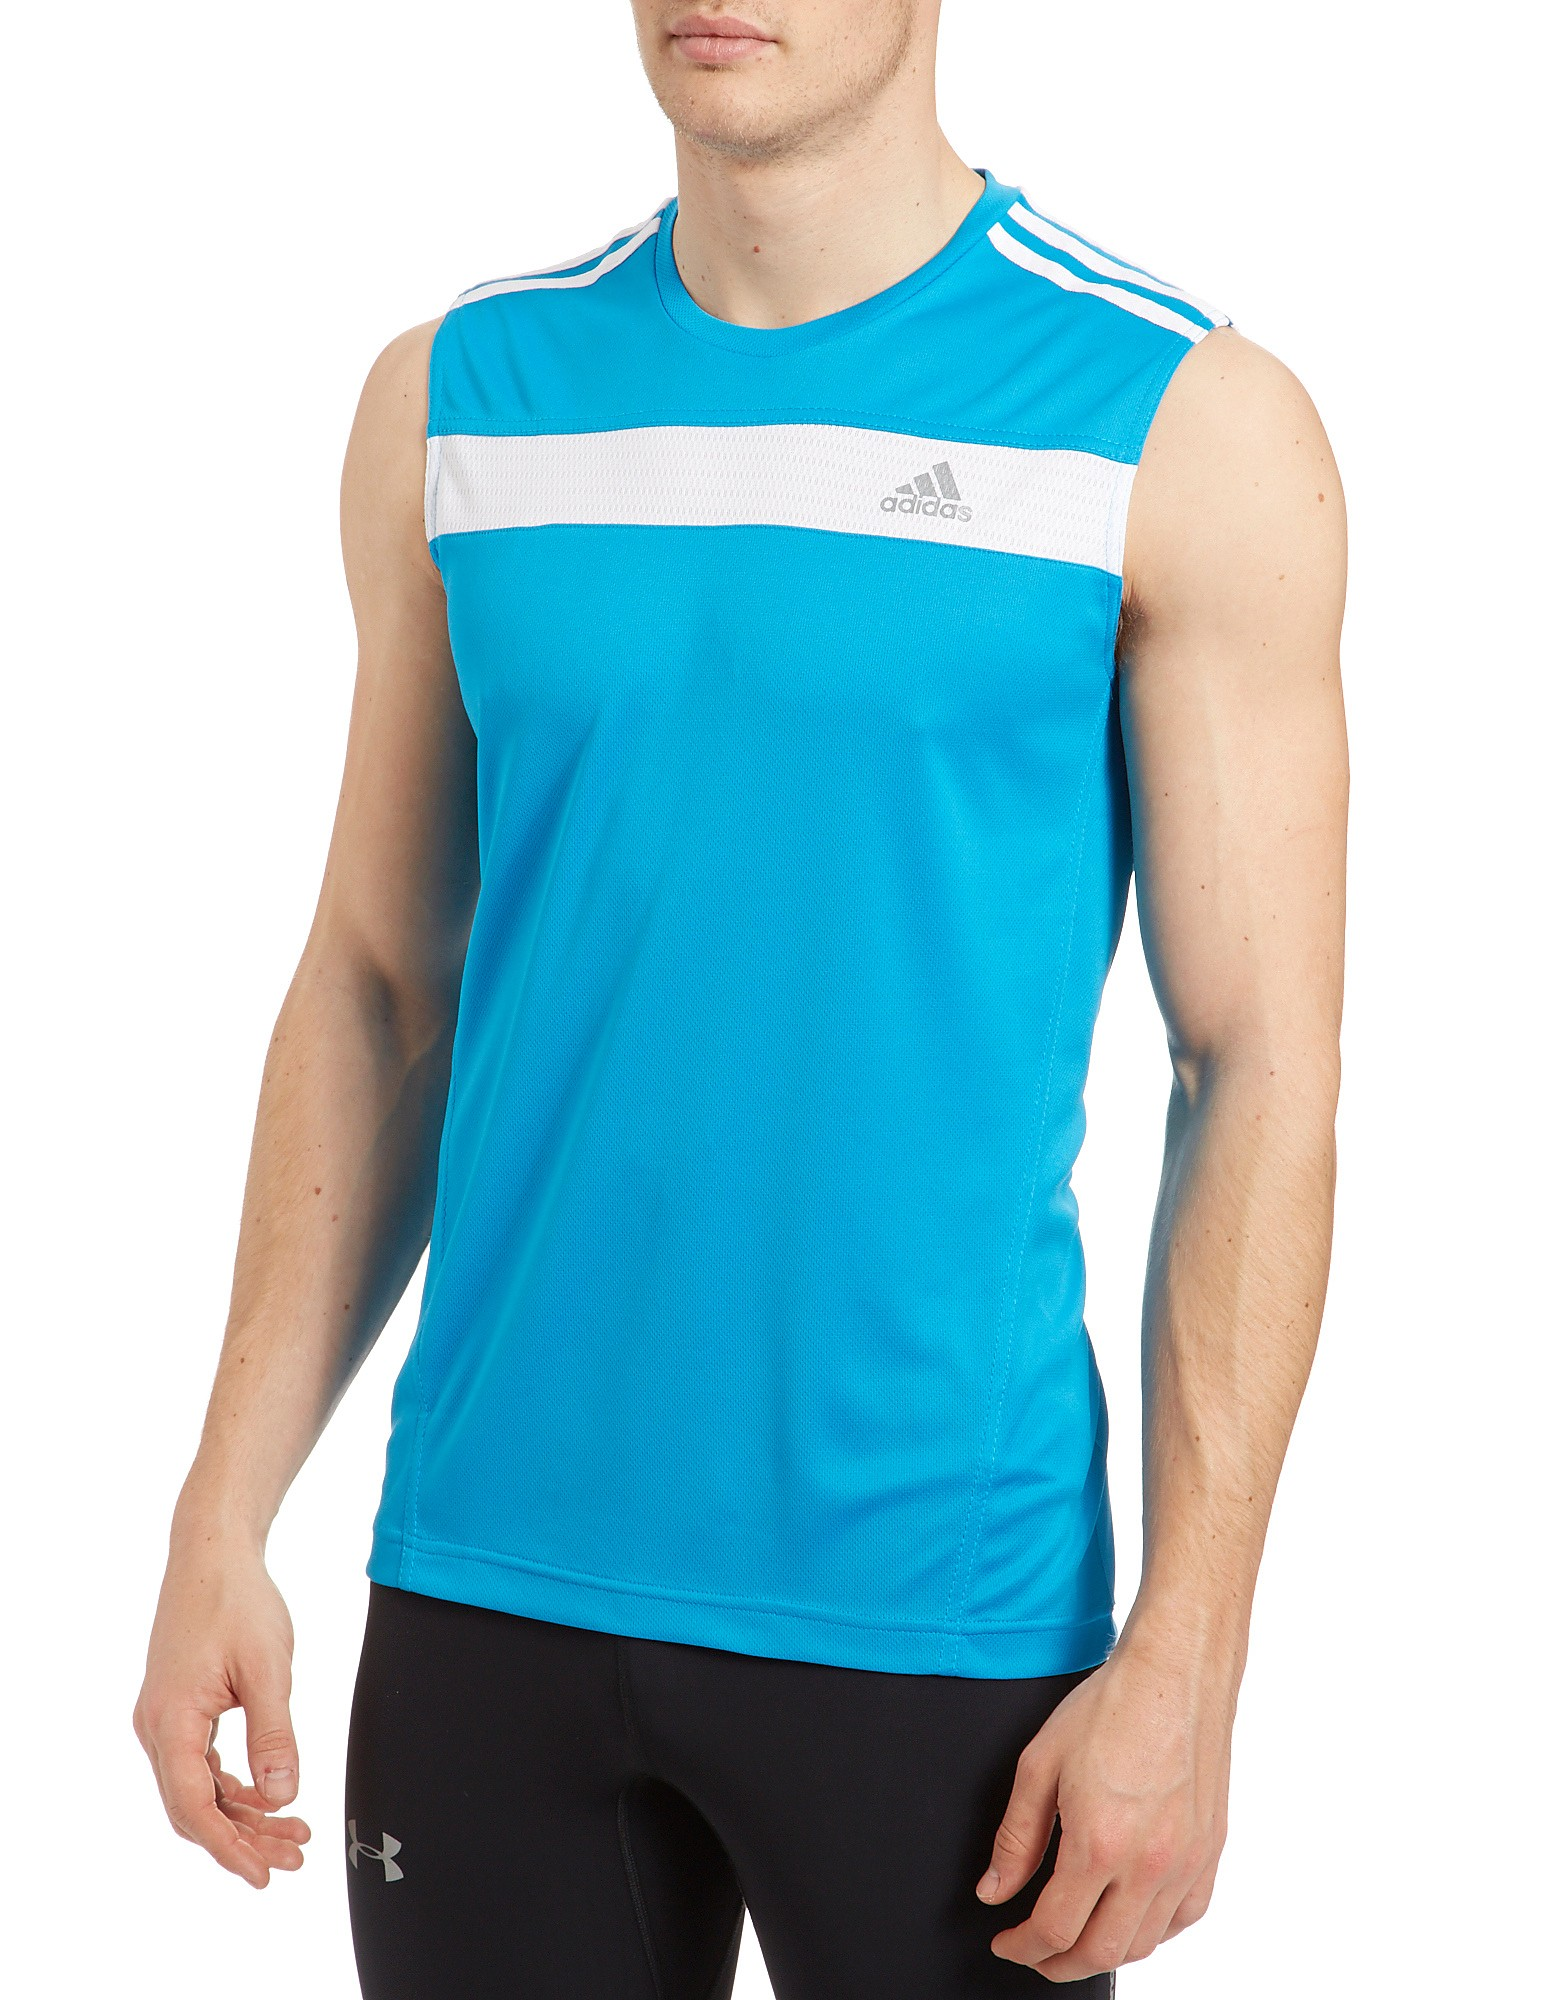 Adidas Response Sleeveless T-Shirt product image